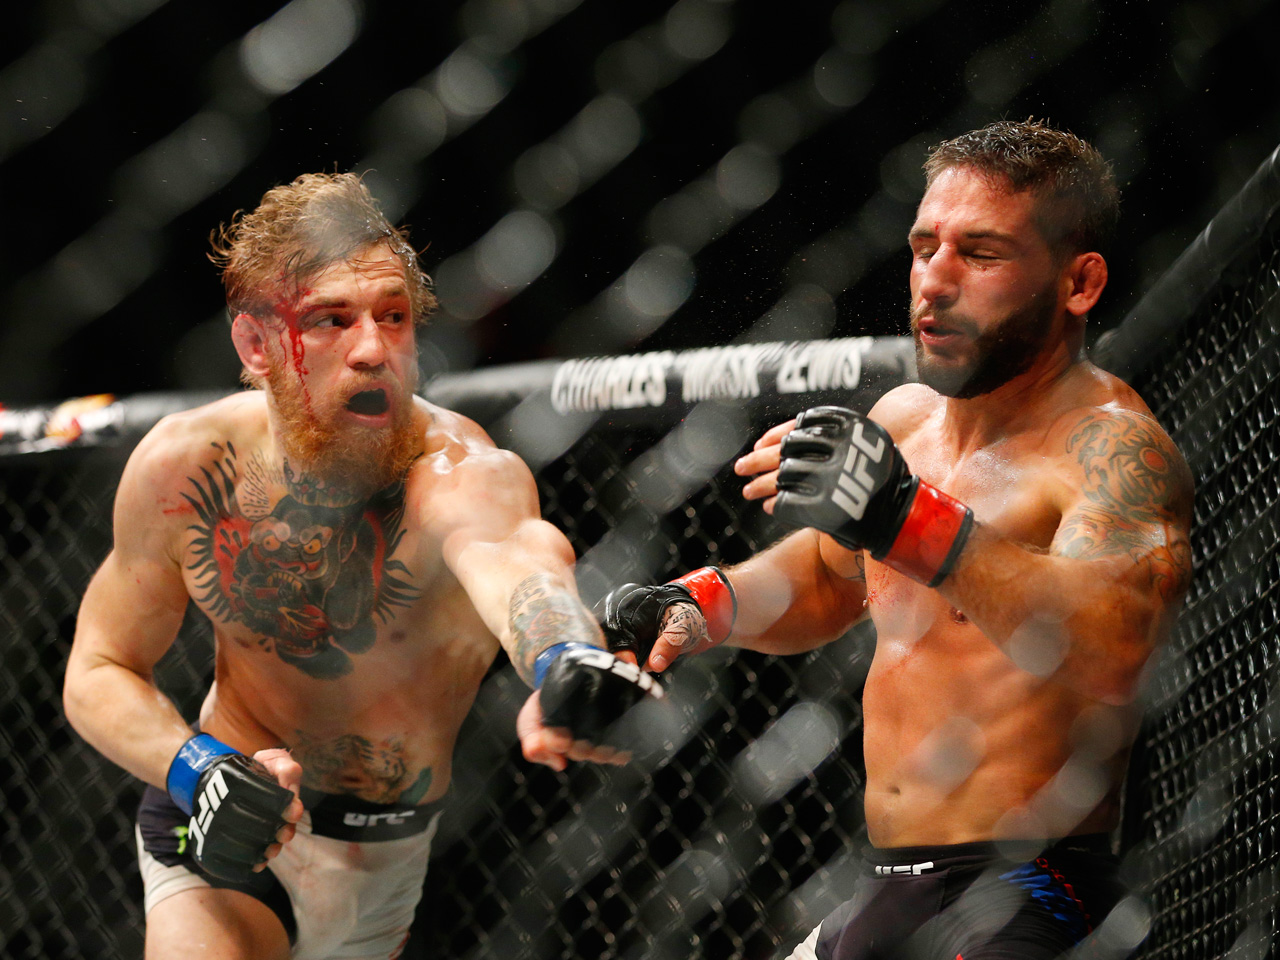 singles in mcgregor Conor mcgregor dating history relationship info powered by: ora was the artist with the most number-one singles on the uk singles chart in 2012, with three con.